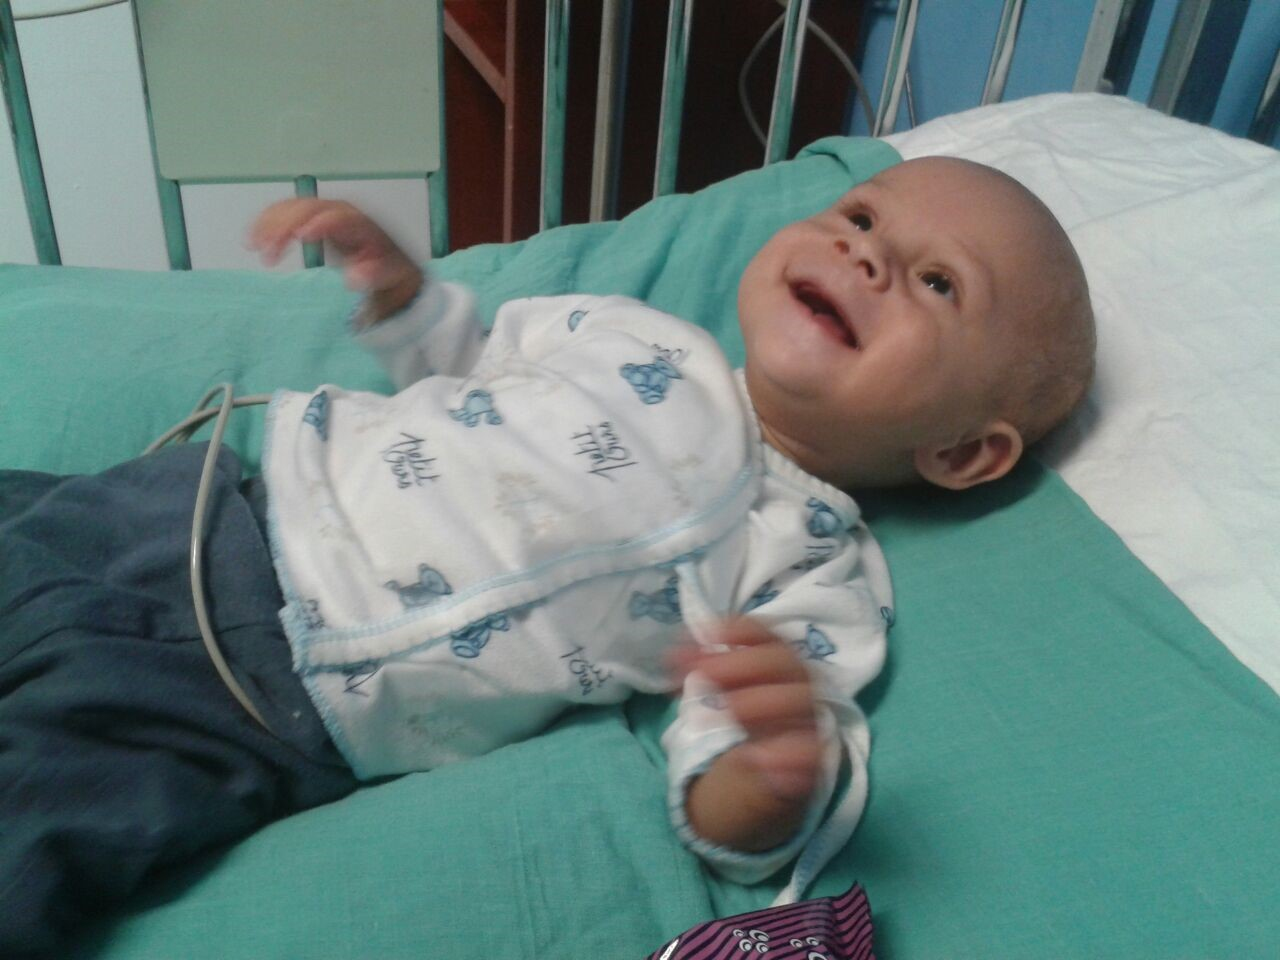 Yvonne, a child who received open-heart surgery